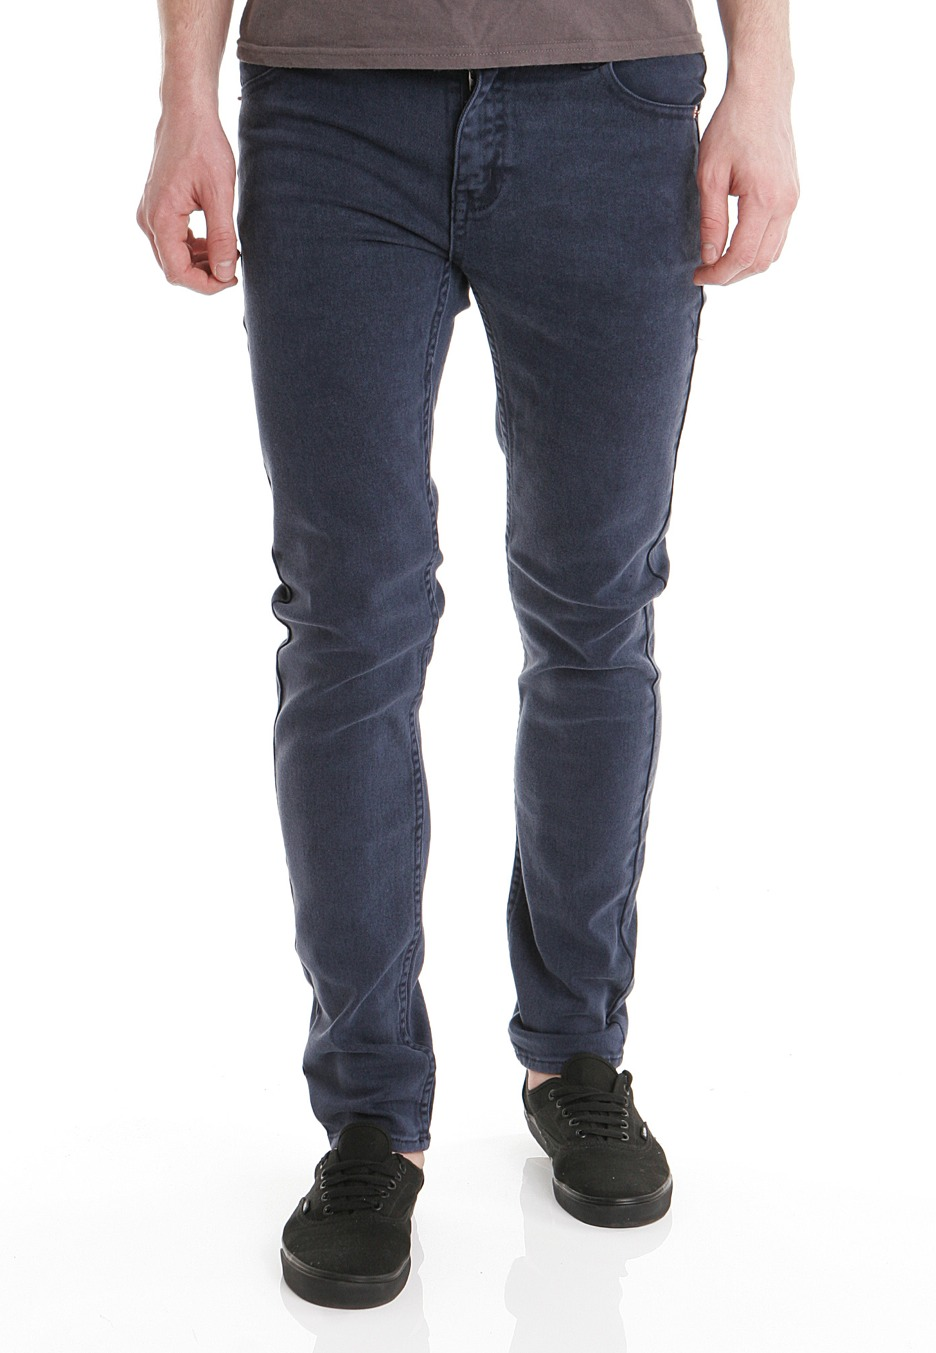 Nice Jeans For Cheap - Jeans Am